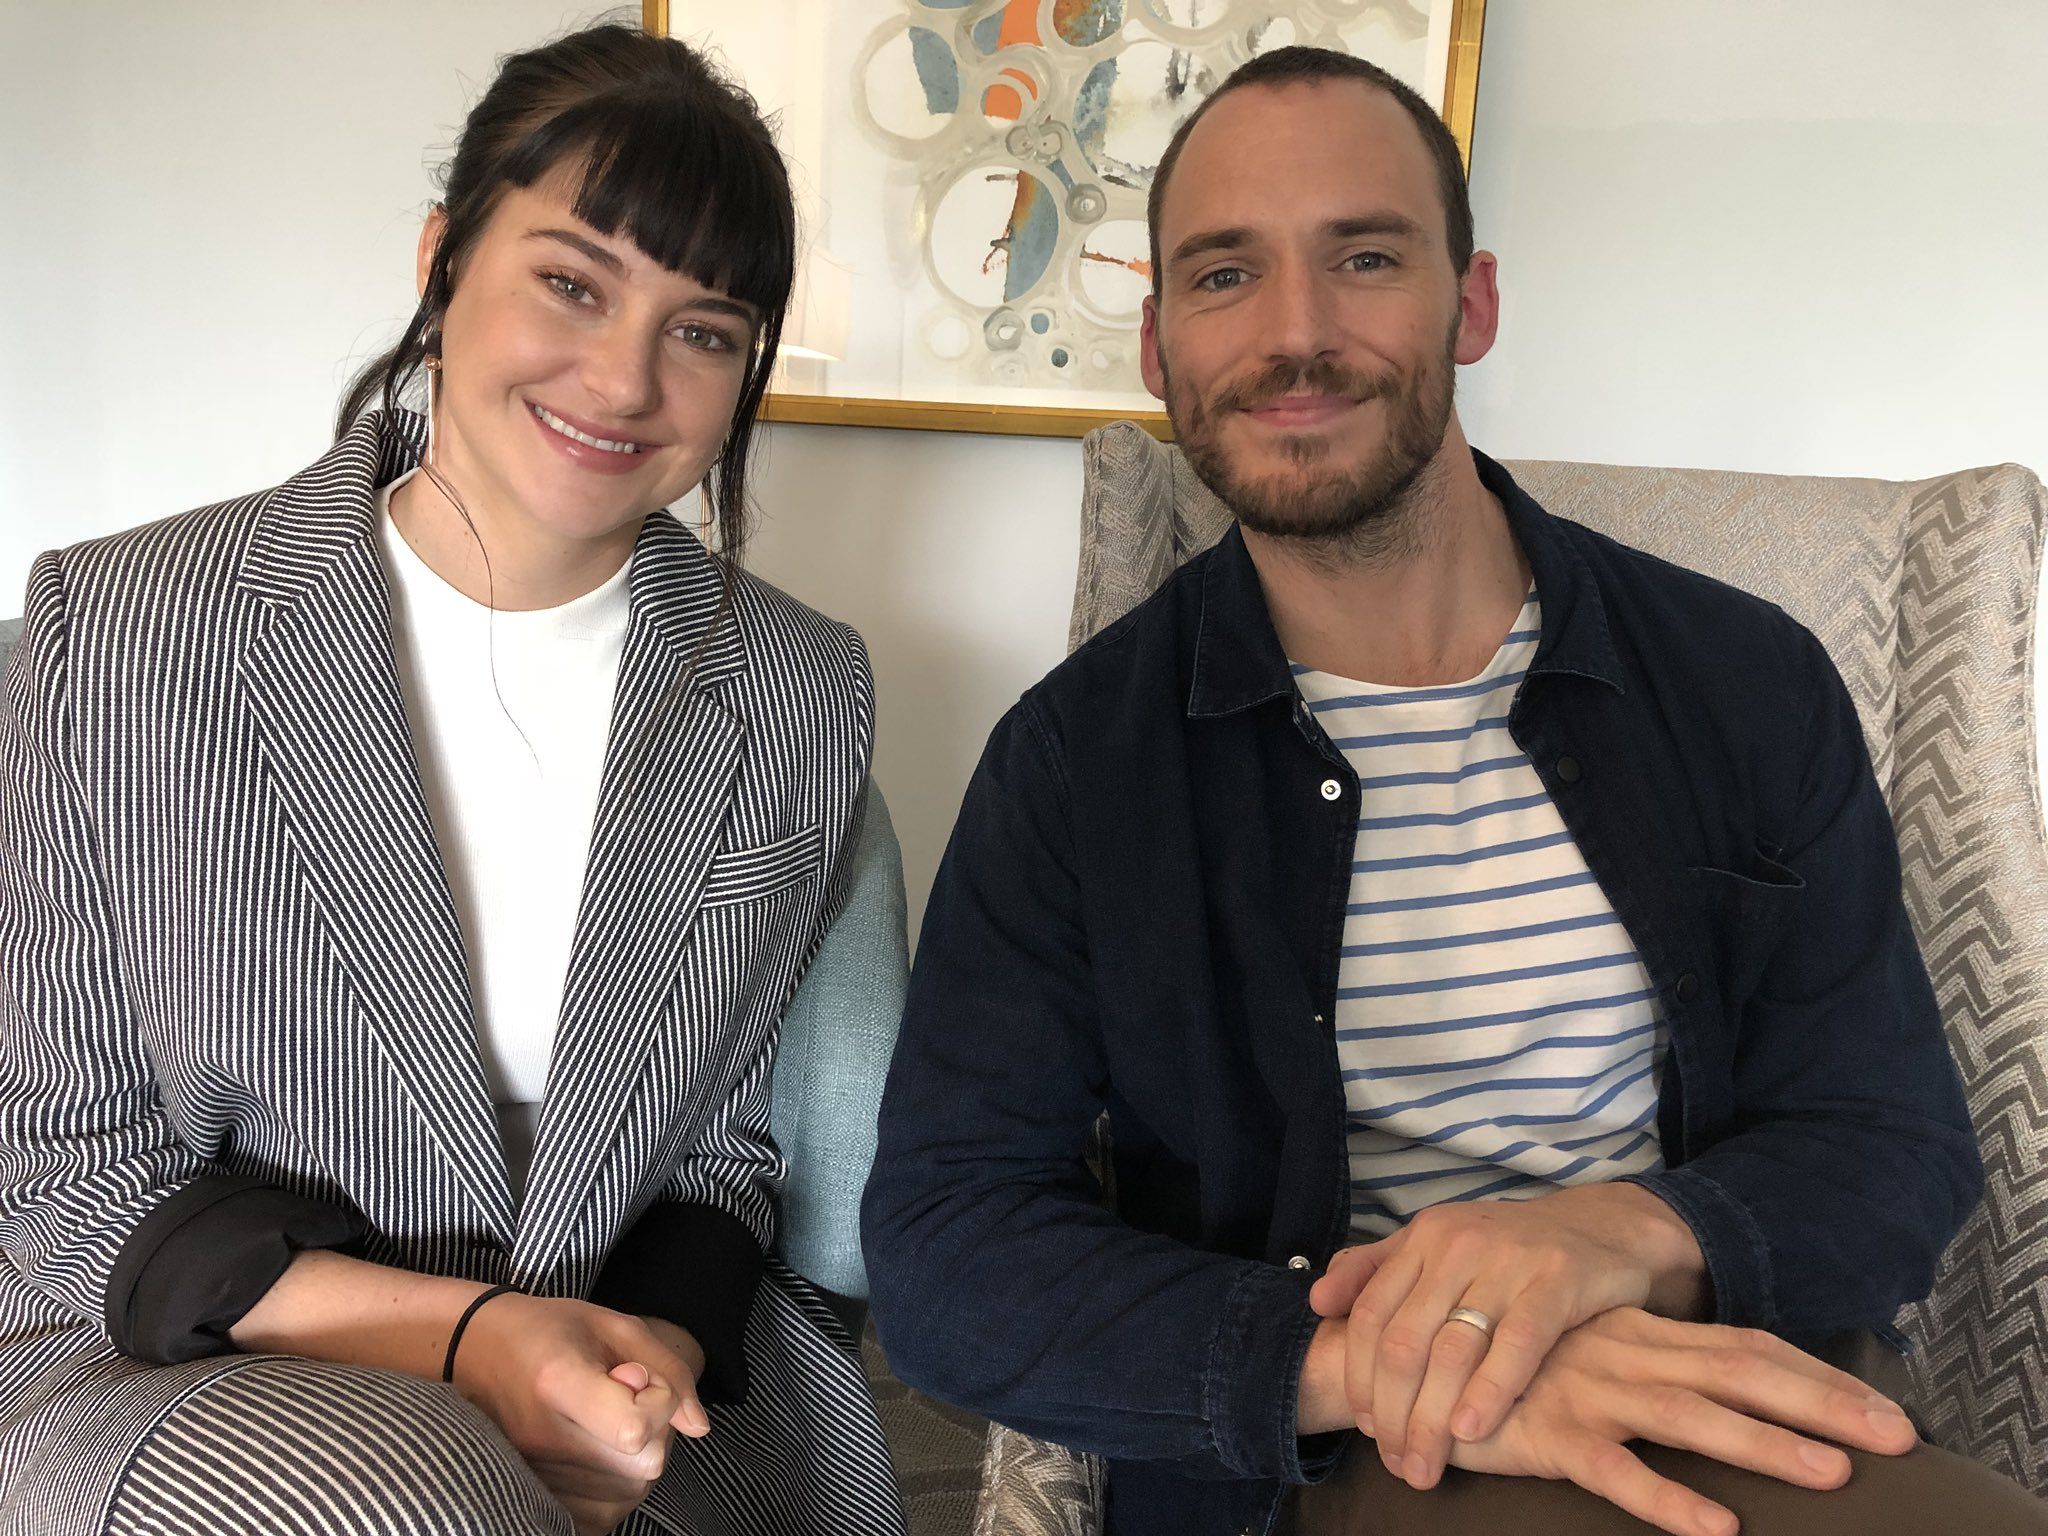 Hey, it's @shailenewoodley and @samclaflin here to answer your Q's about @AdriftMovie! ⛵️ #AskAdrift https://t.co/nkWT7yvg2T